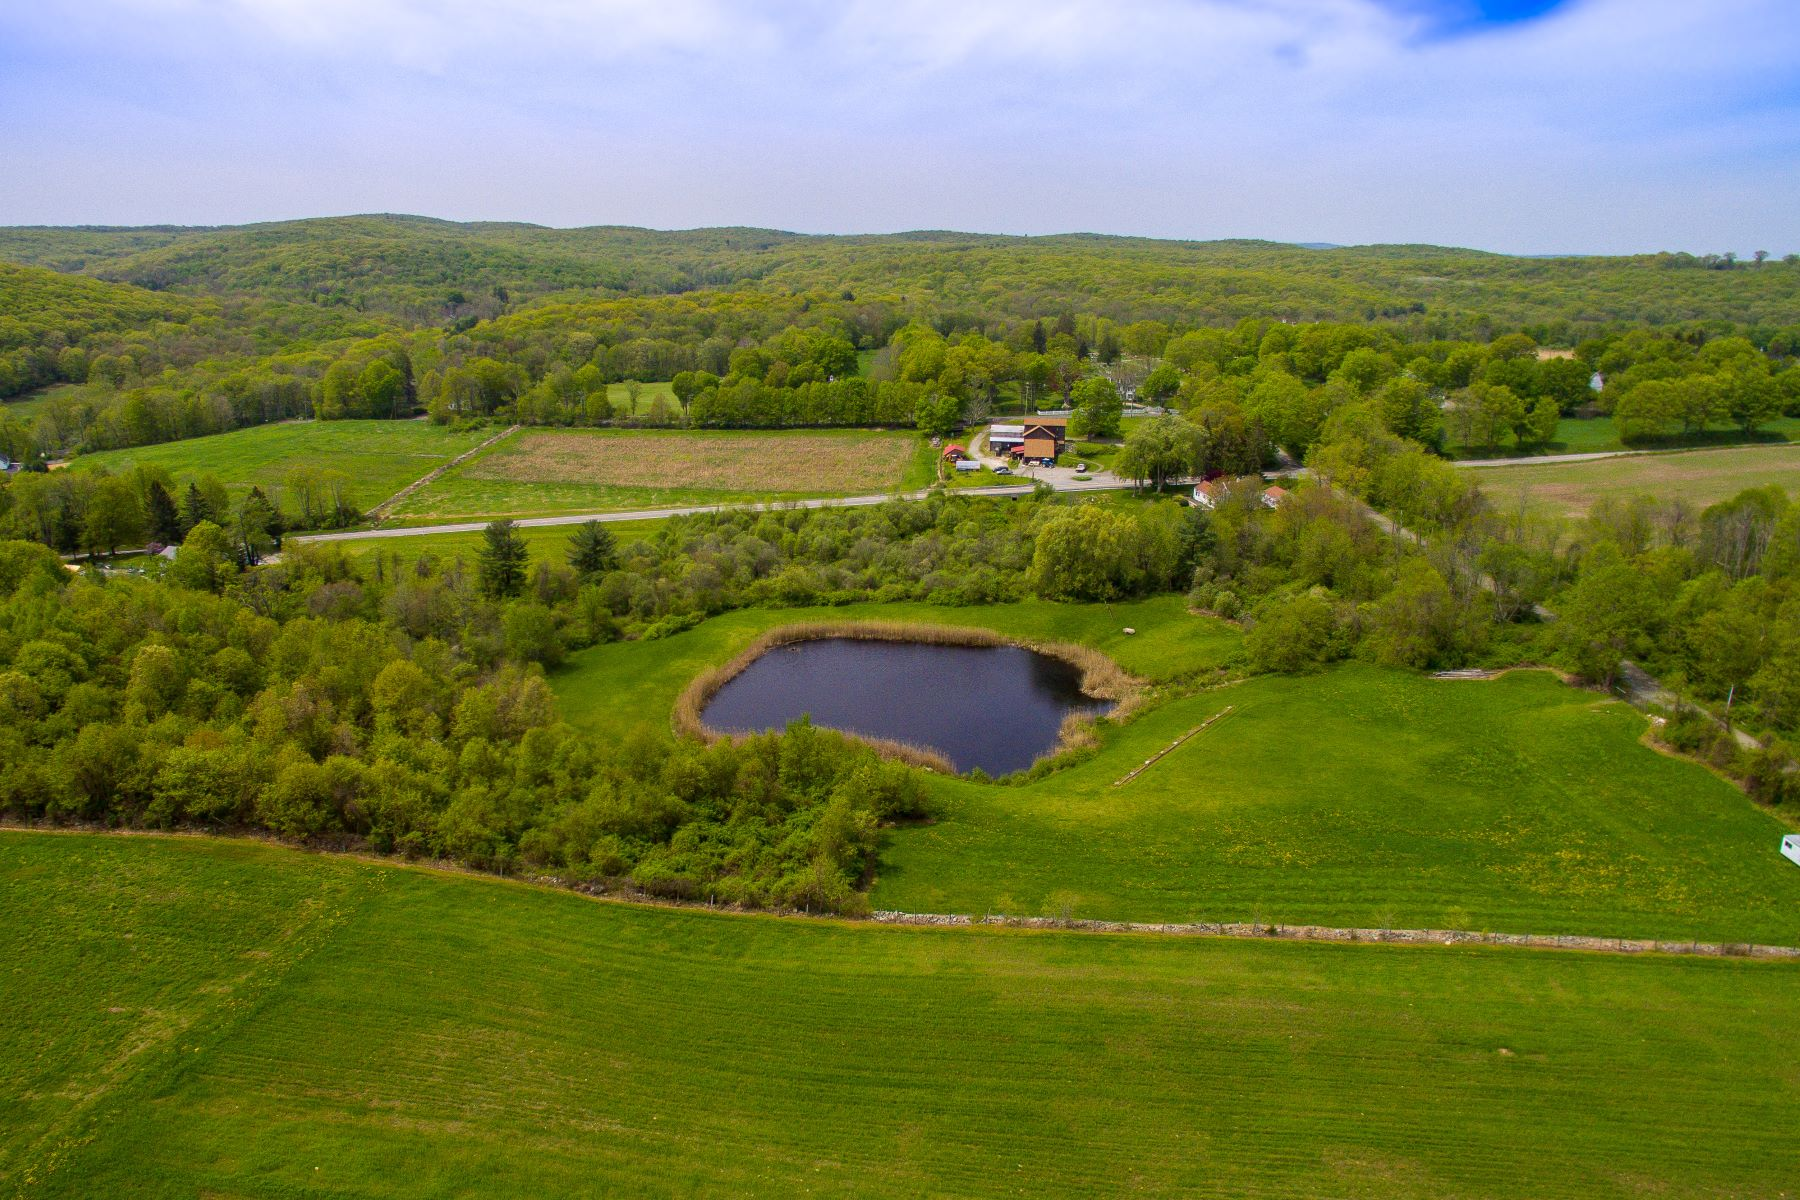 Land for Sale at Ellsworth Orchard 461 Cornwall Bridge Road Sharon, Connecticut 06069 United States